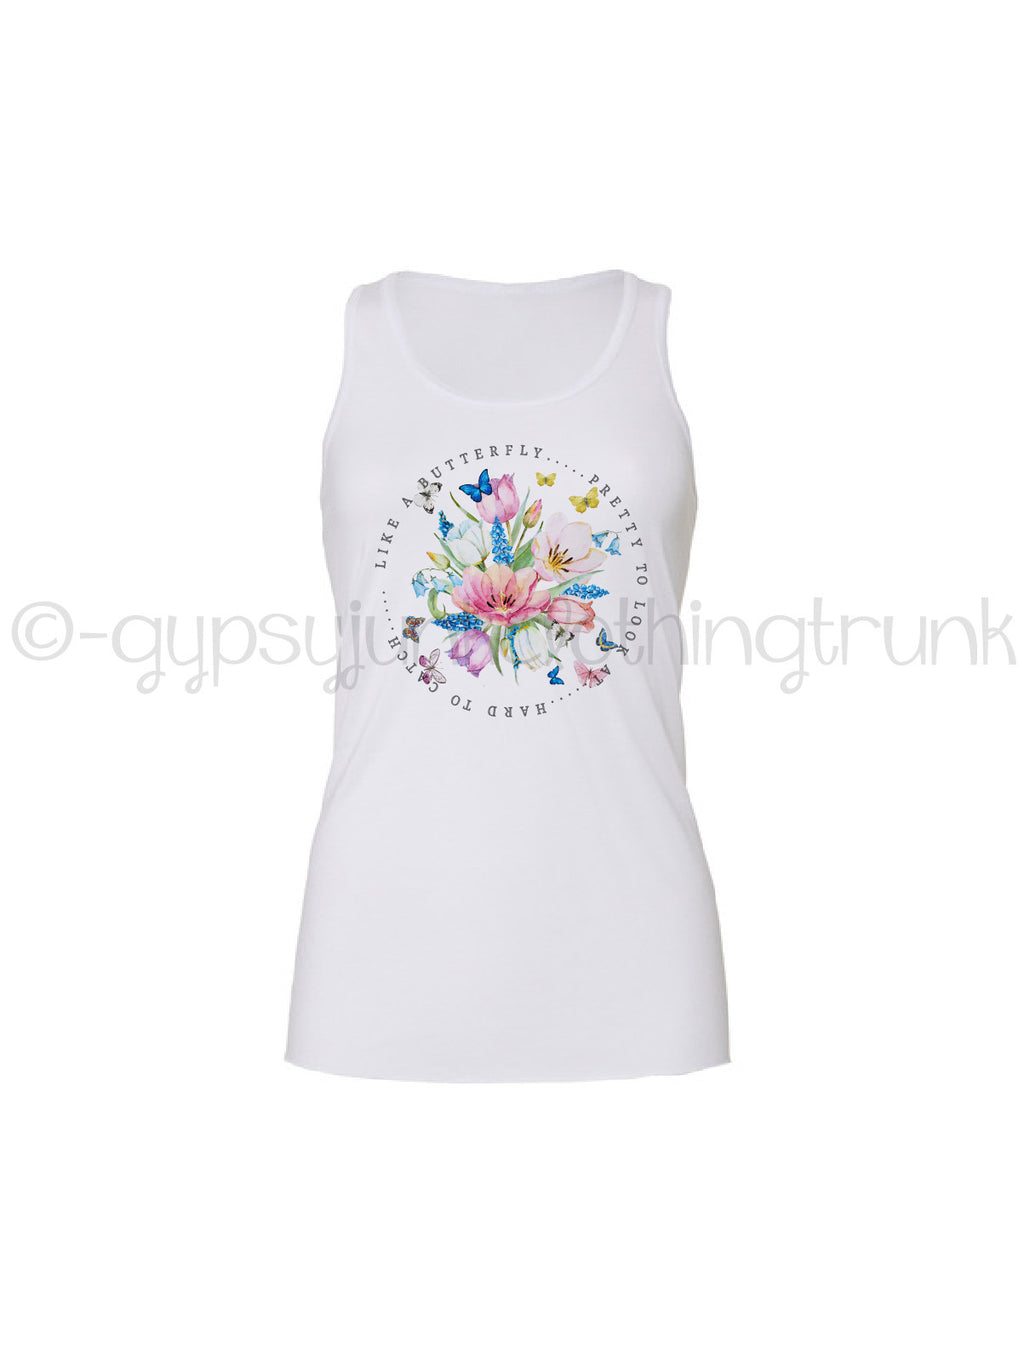 Butterfly Quote Tank Top